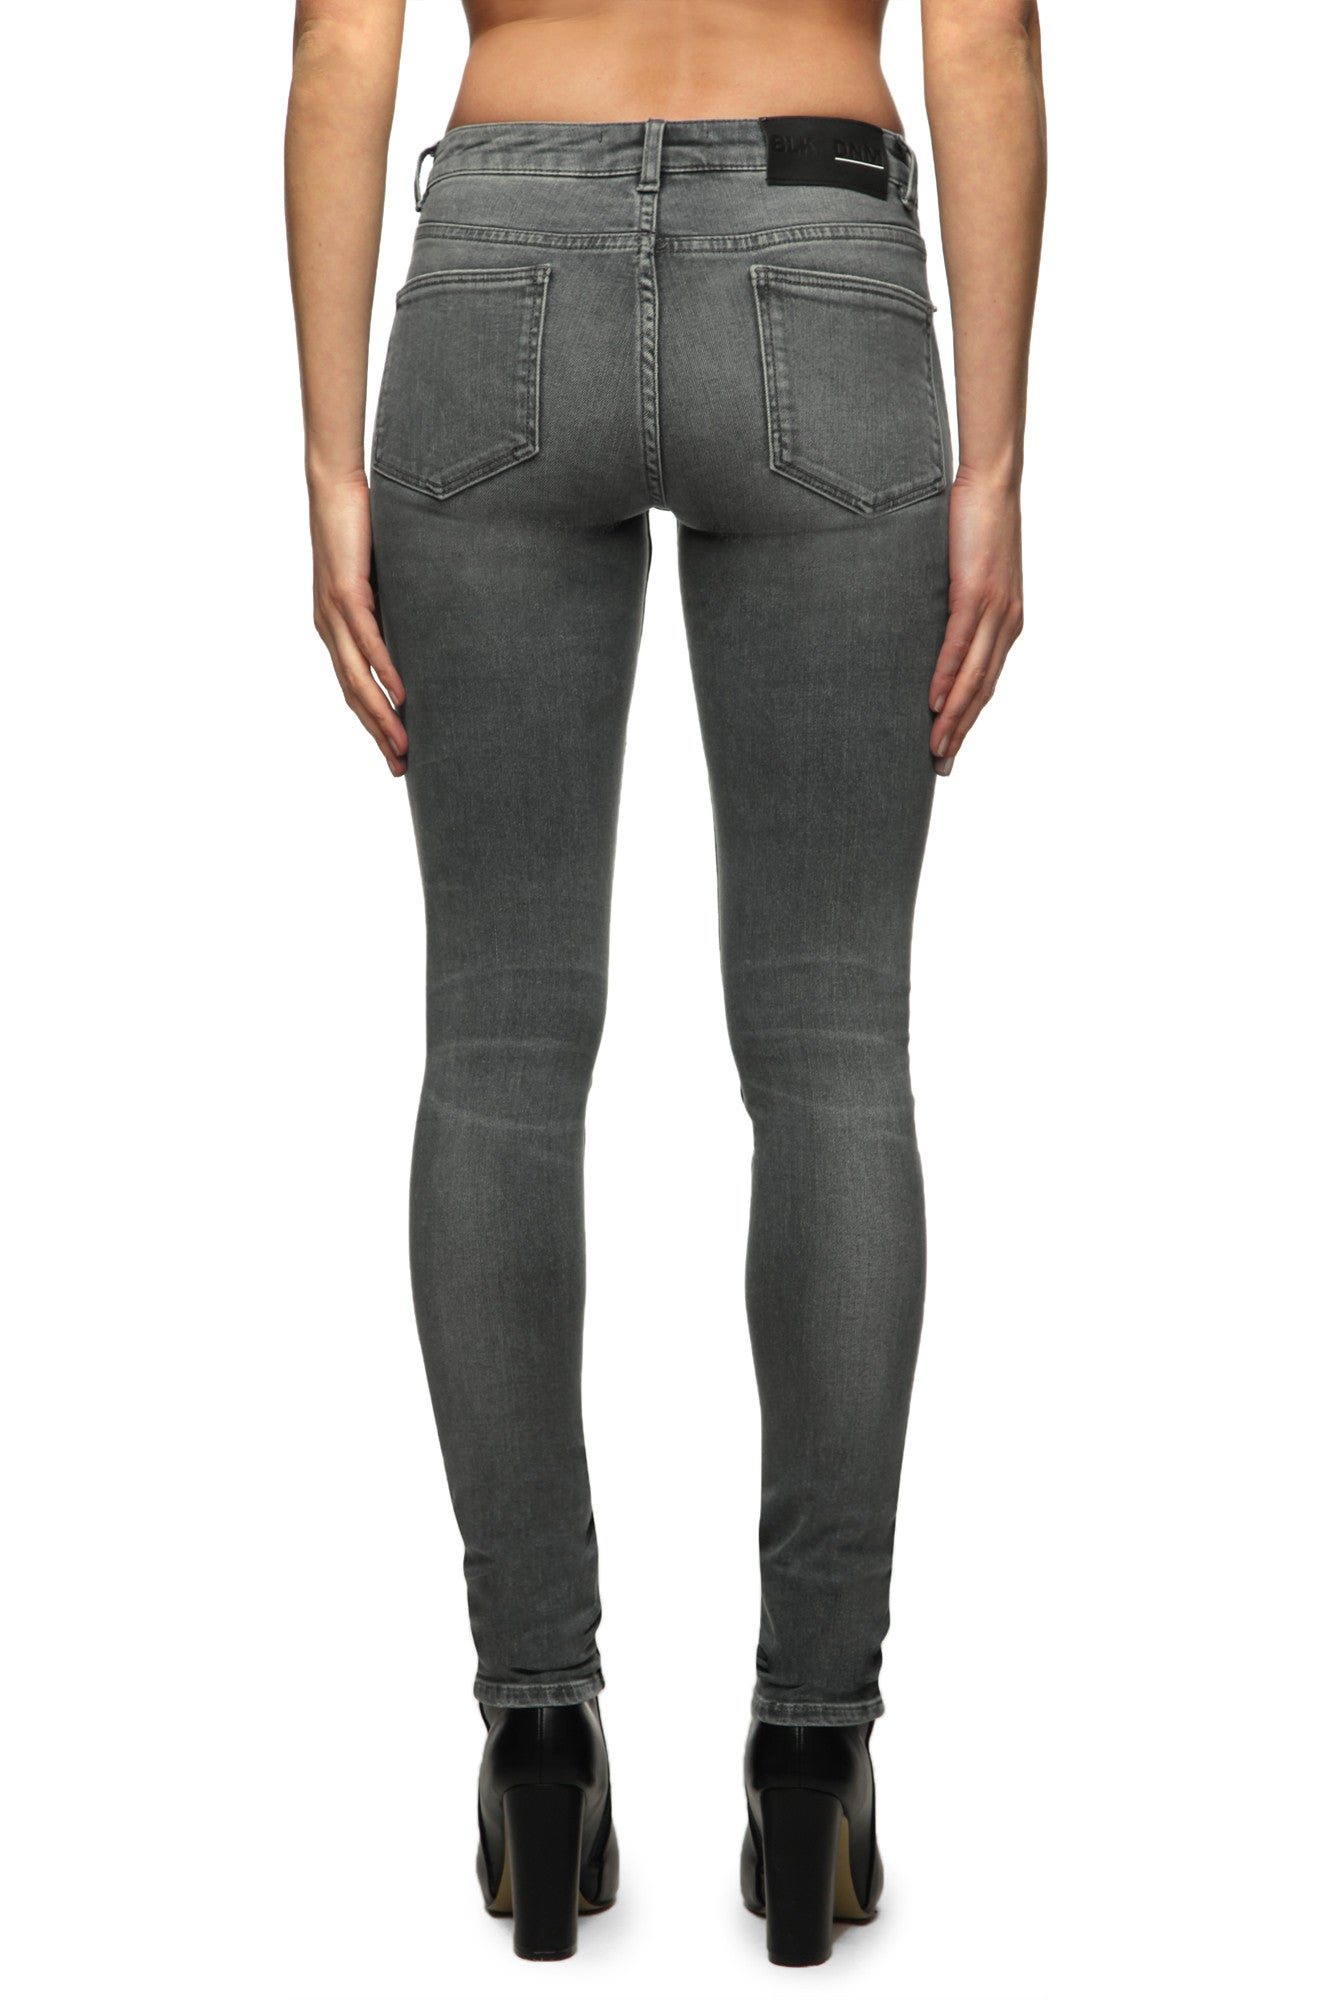 Womens Jeans 26 Hunts Grey